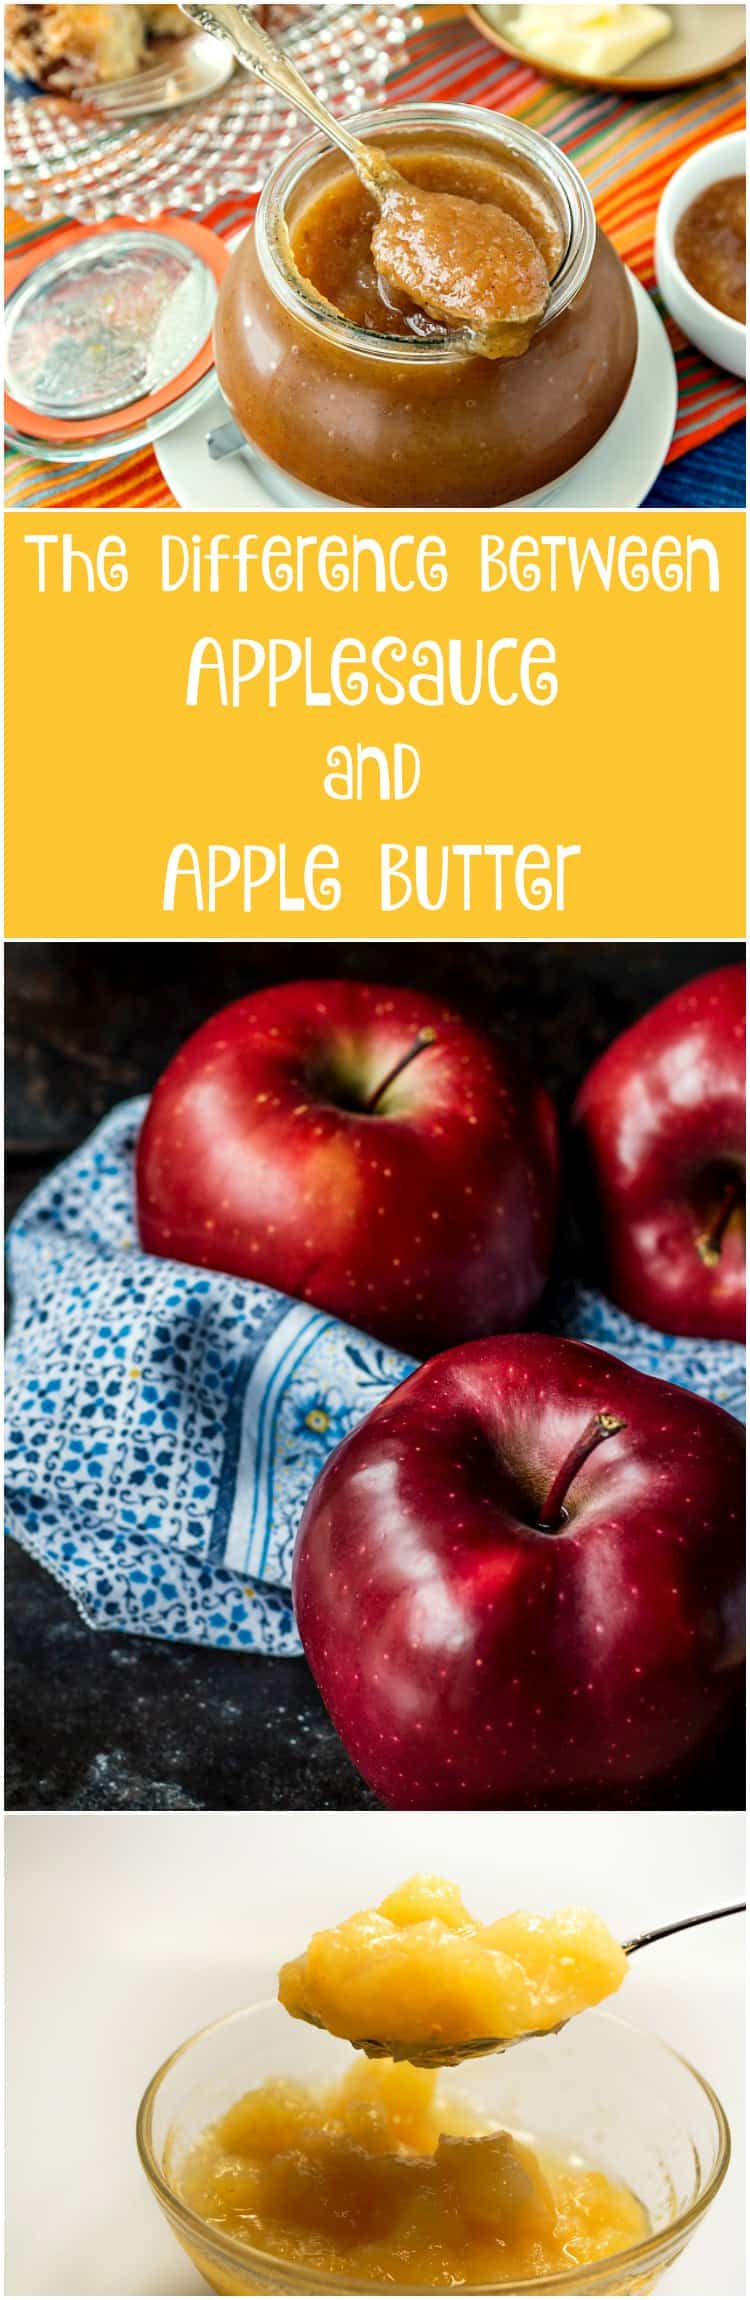 This post will tell you everything you want to know about the difference between applesauce and apple butter. Plus there's a lovely recipe for Hibiscus Lavender Apple Butter and links to even more recipes. Enjoy! | pastrychefonline,com